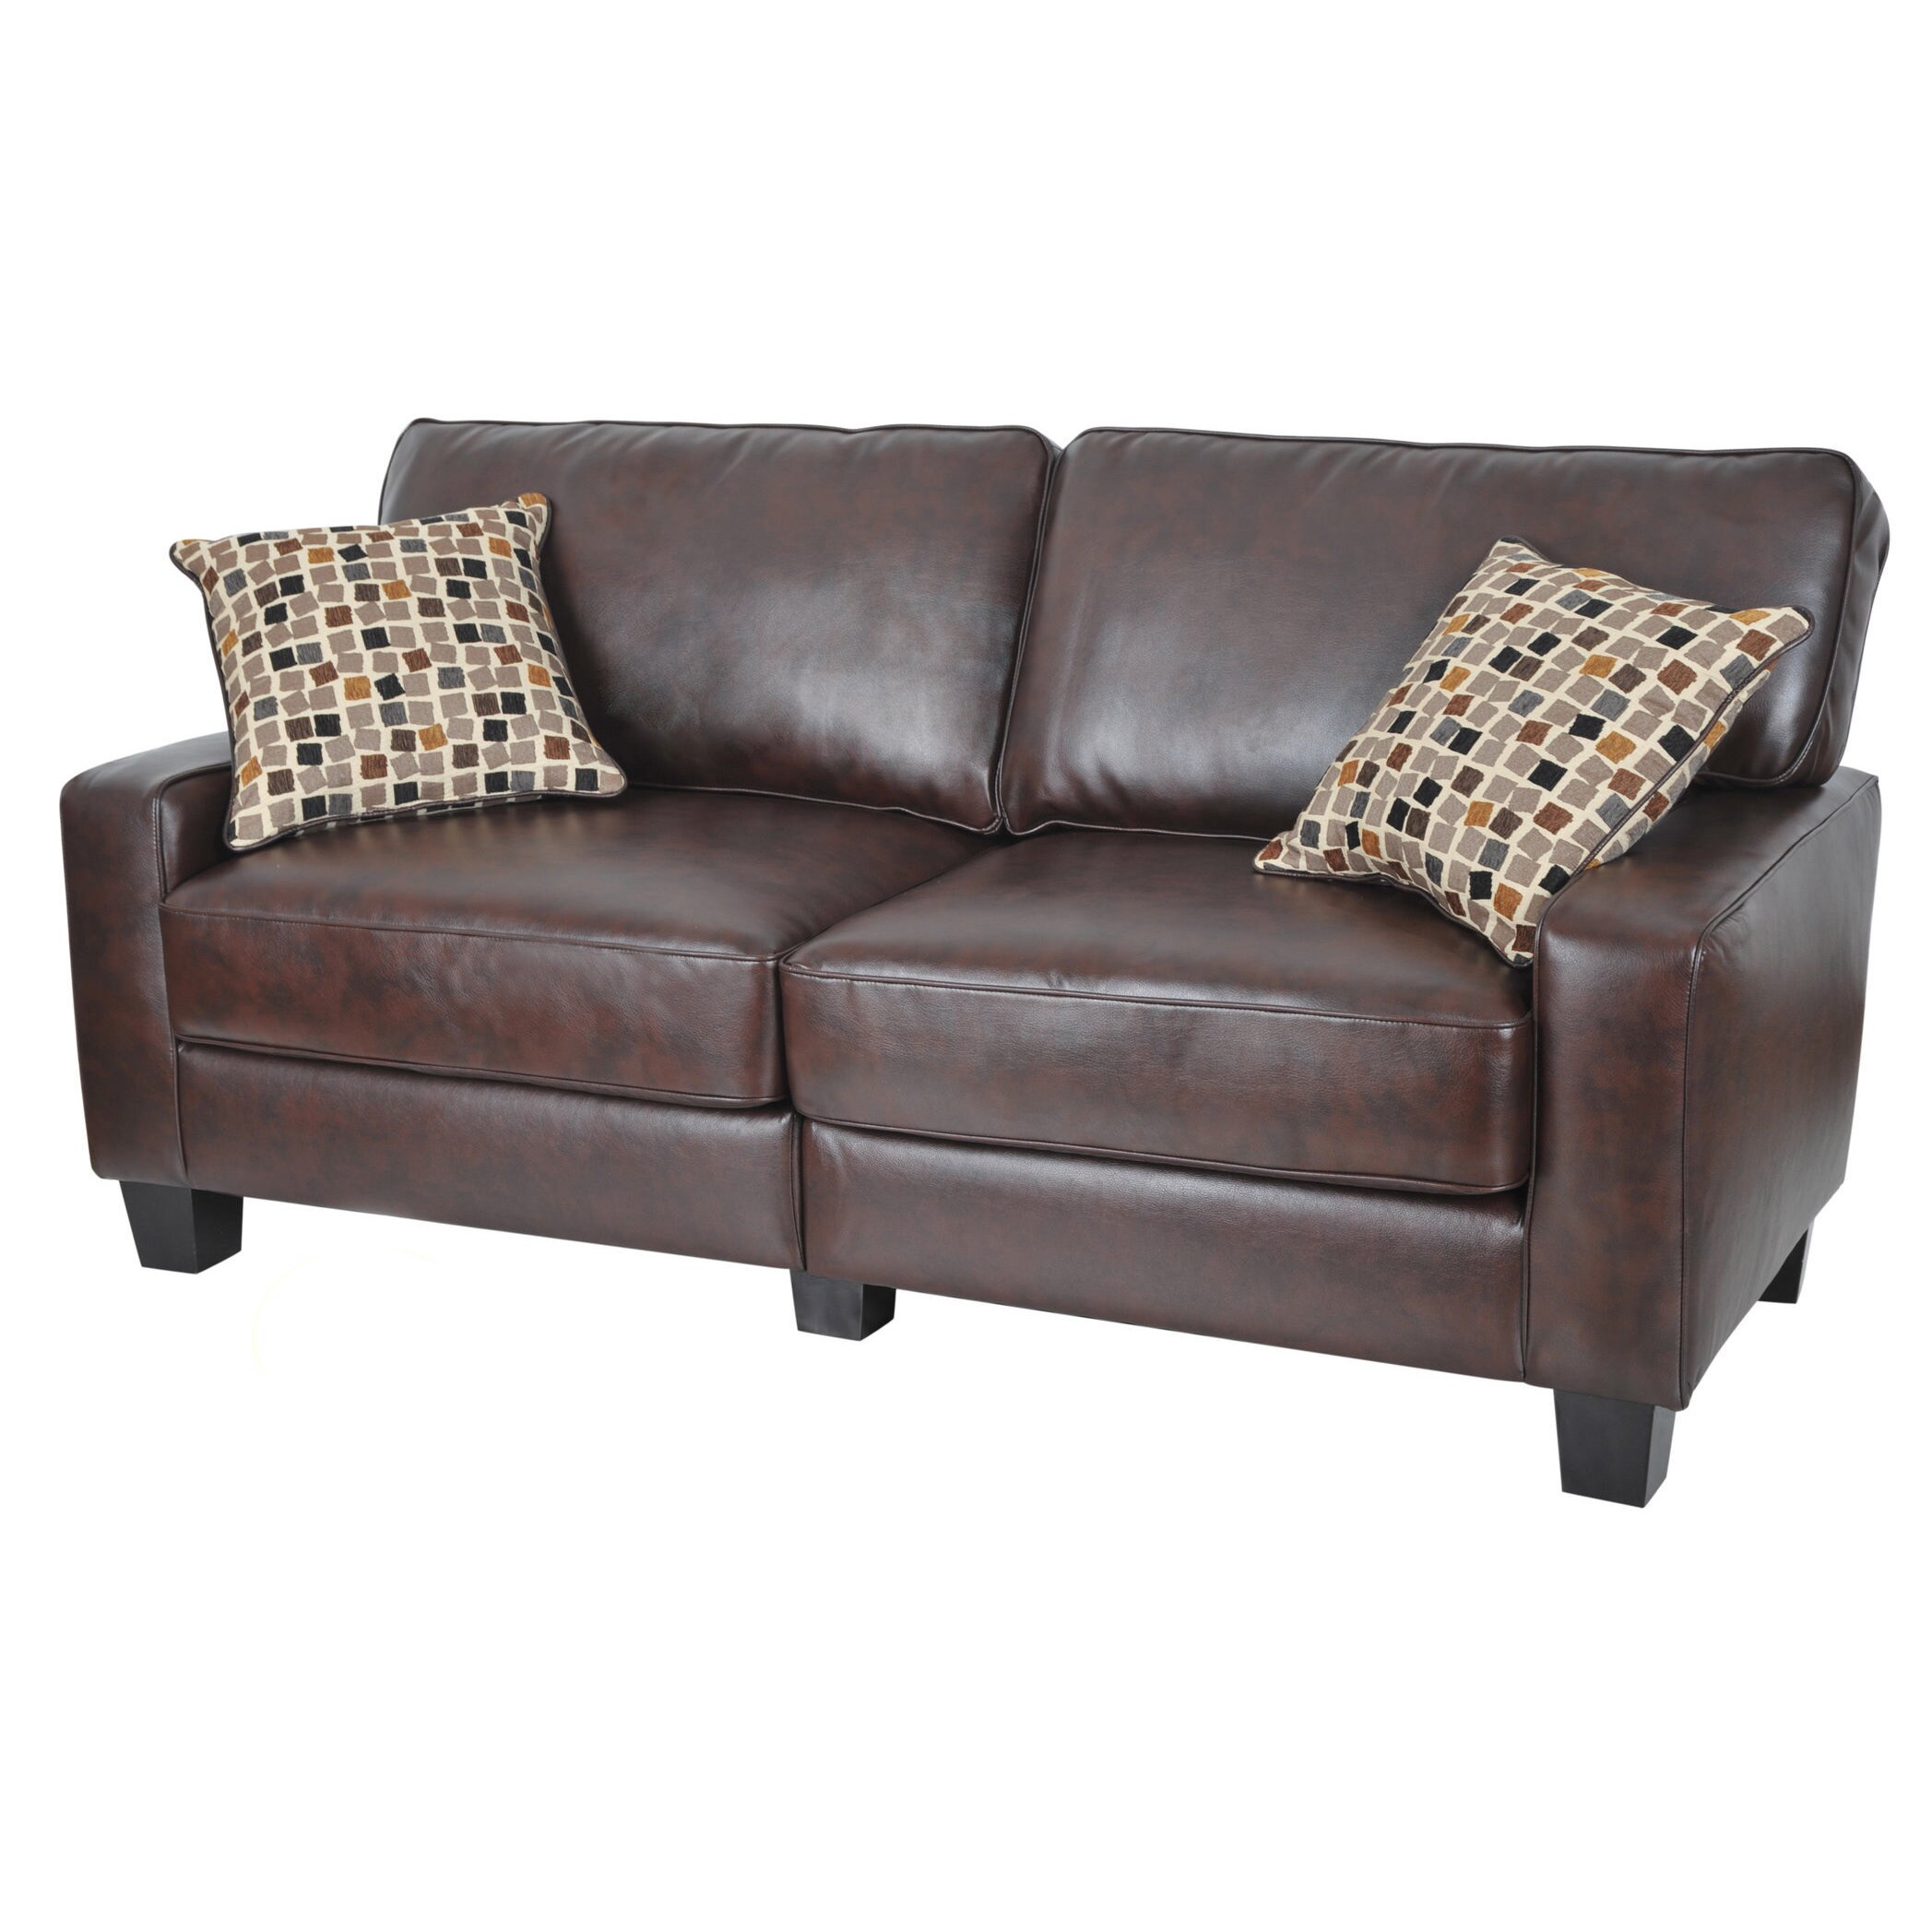 Serta Monaco Collection 77 Inch Brown Leather Sofa Free Shipping  ~ Brown Leather Sofa Chair